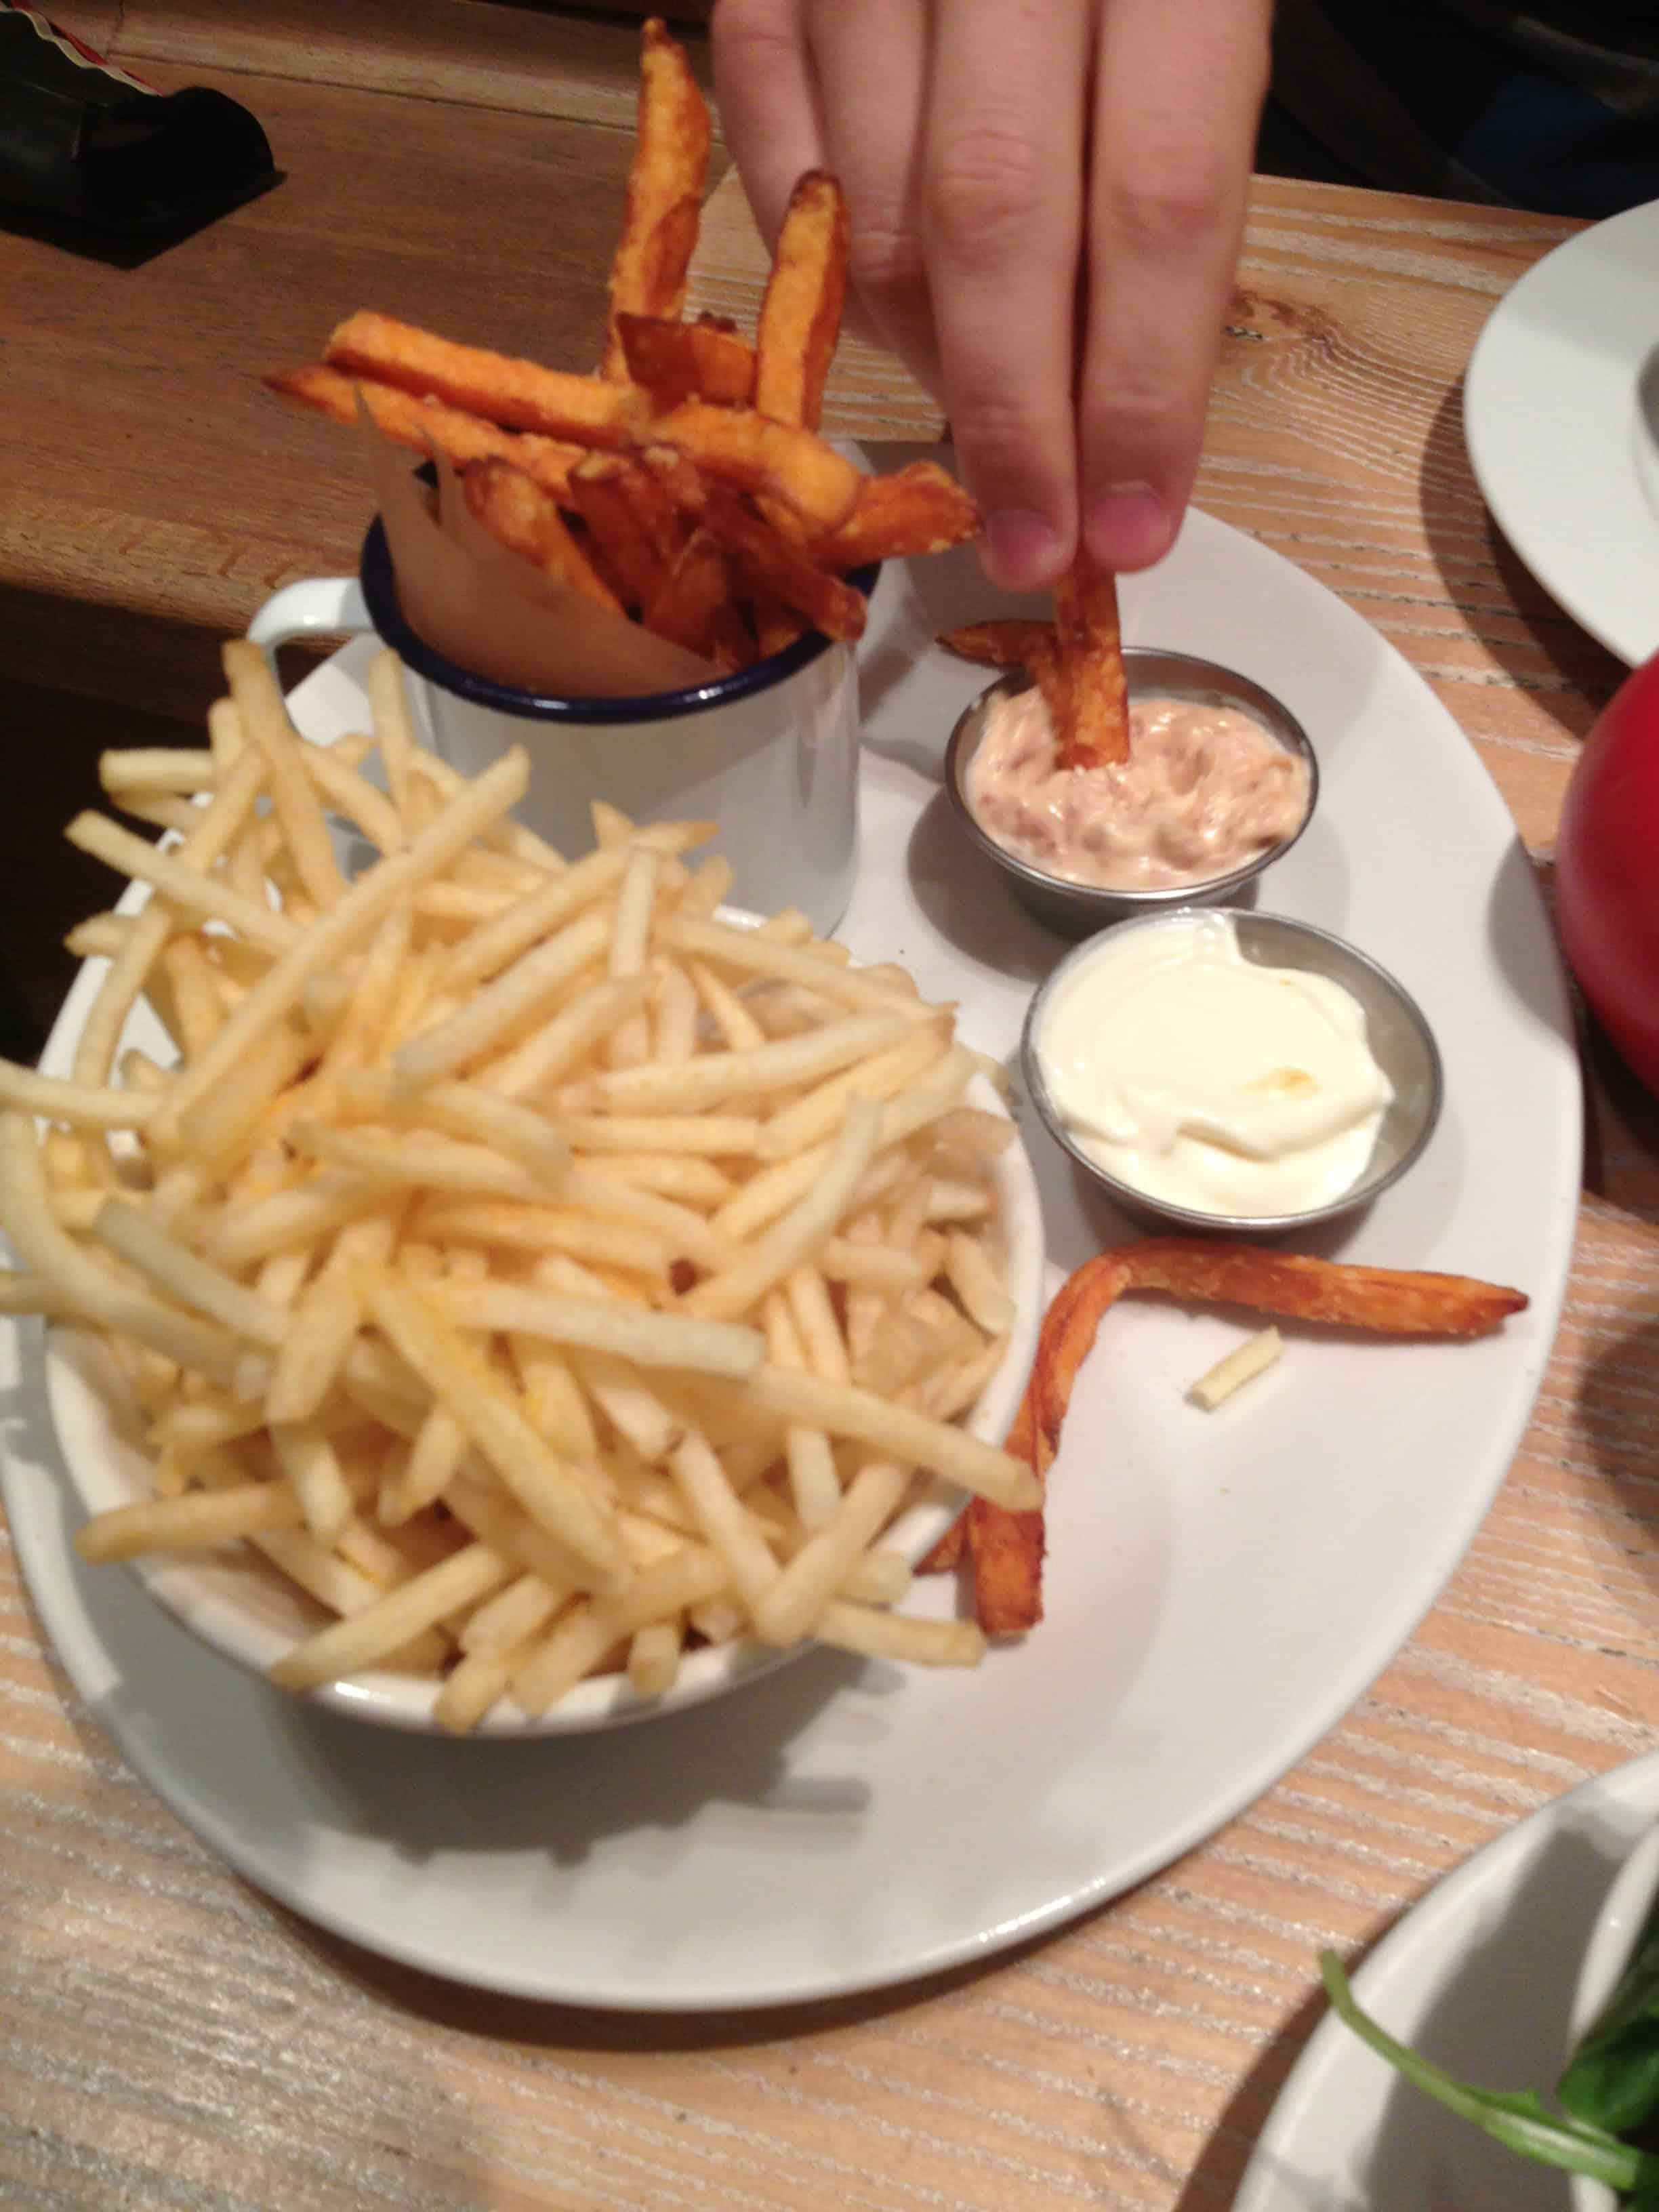 Skinny and sweet potato fries with the awesome bacon mayo.